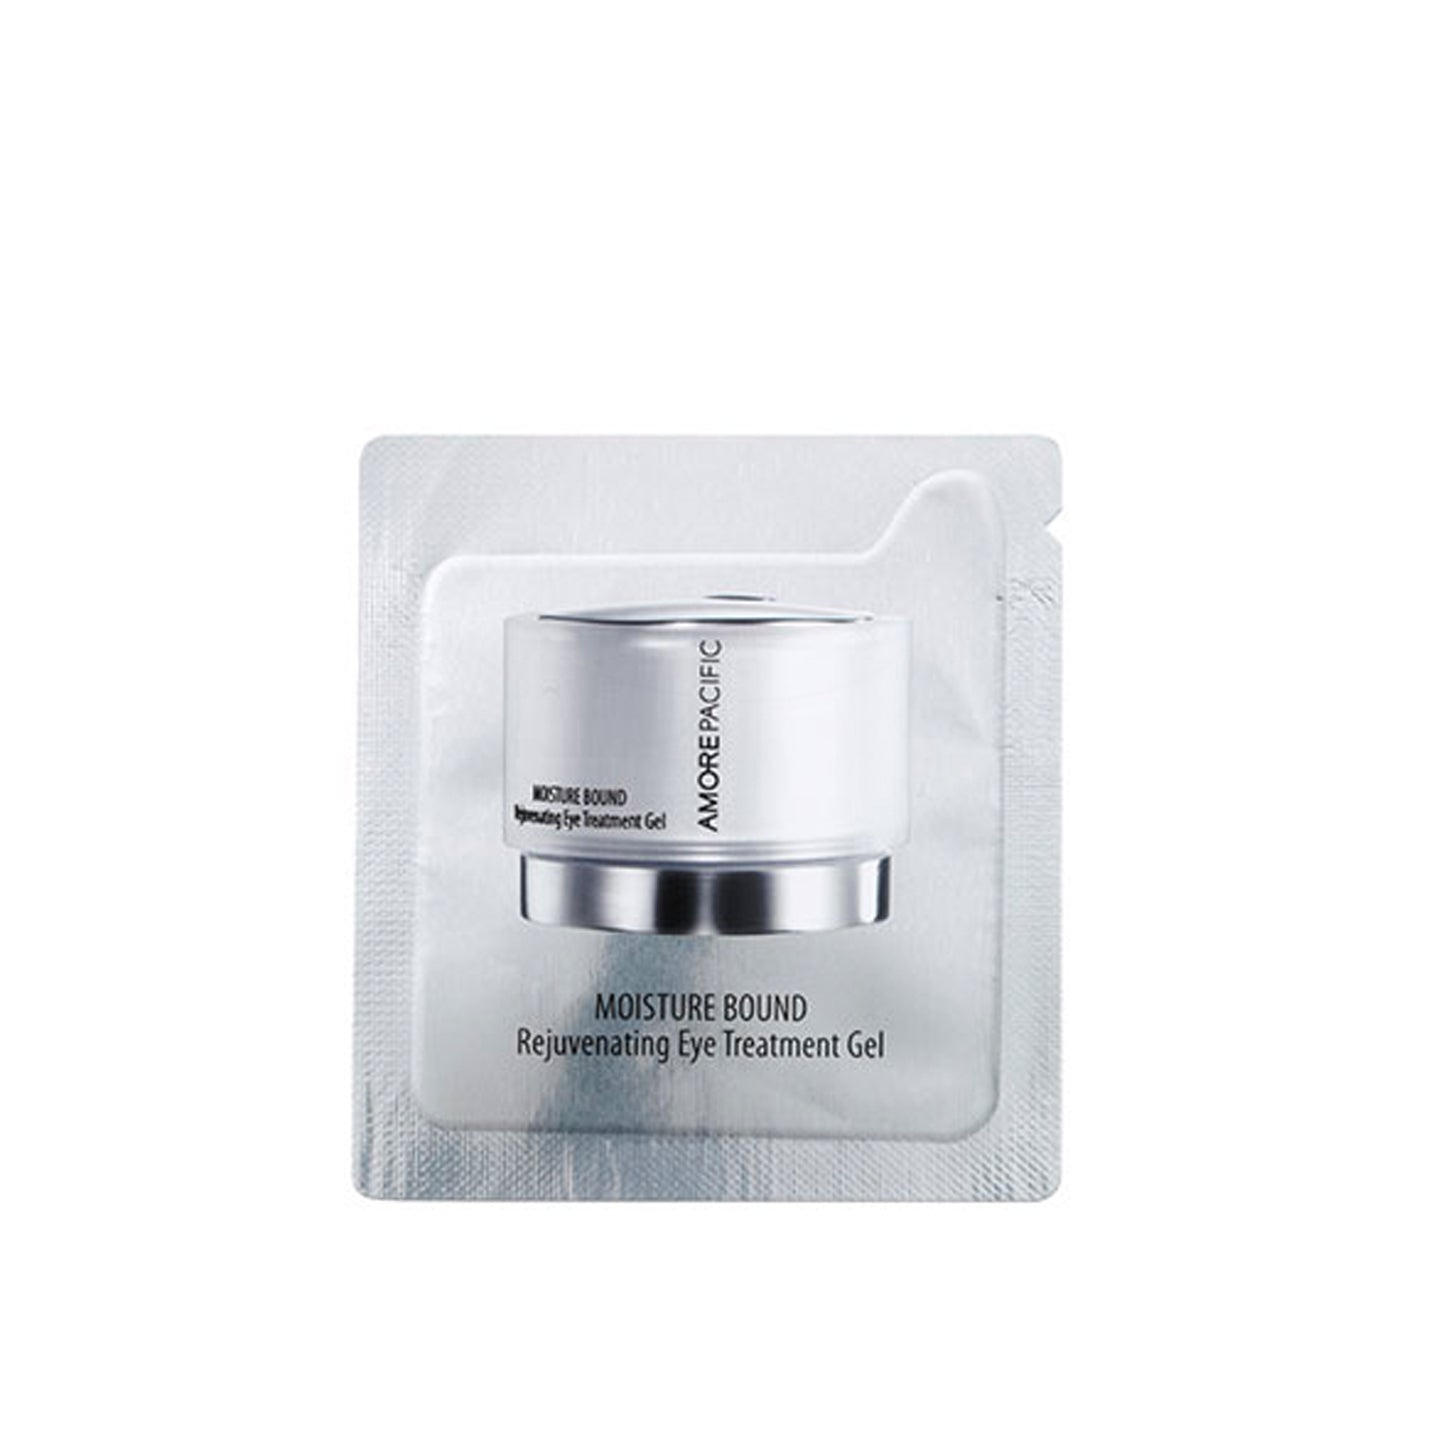 Moisture Bound Rejuvenating Eye Treatment Gel (1ml)